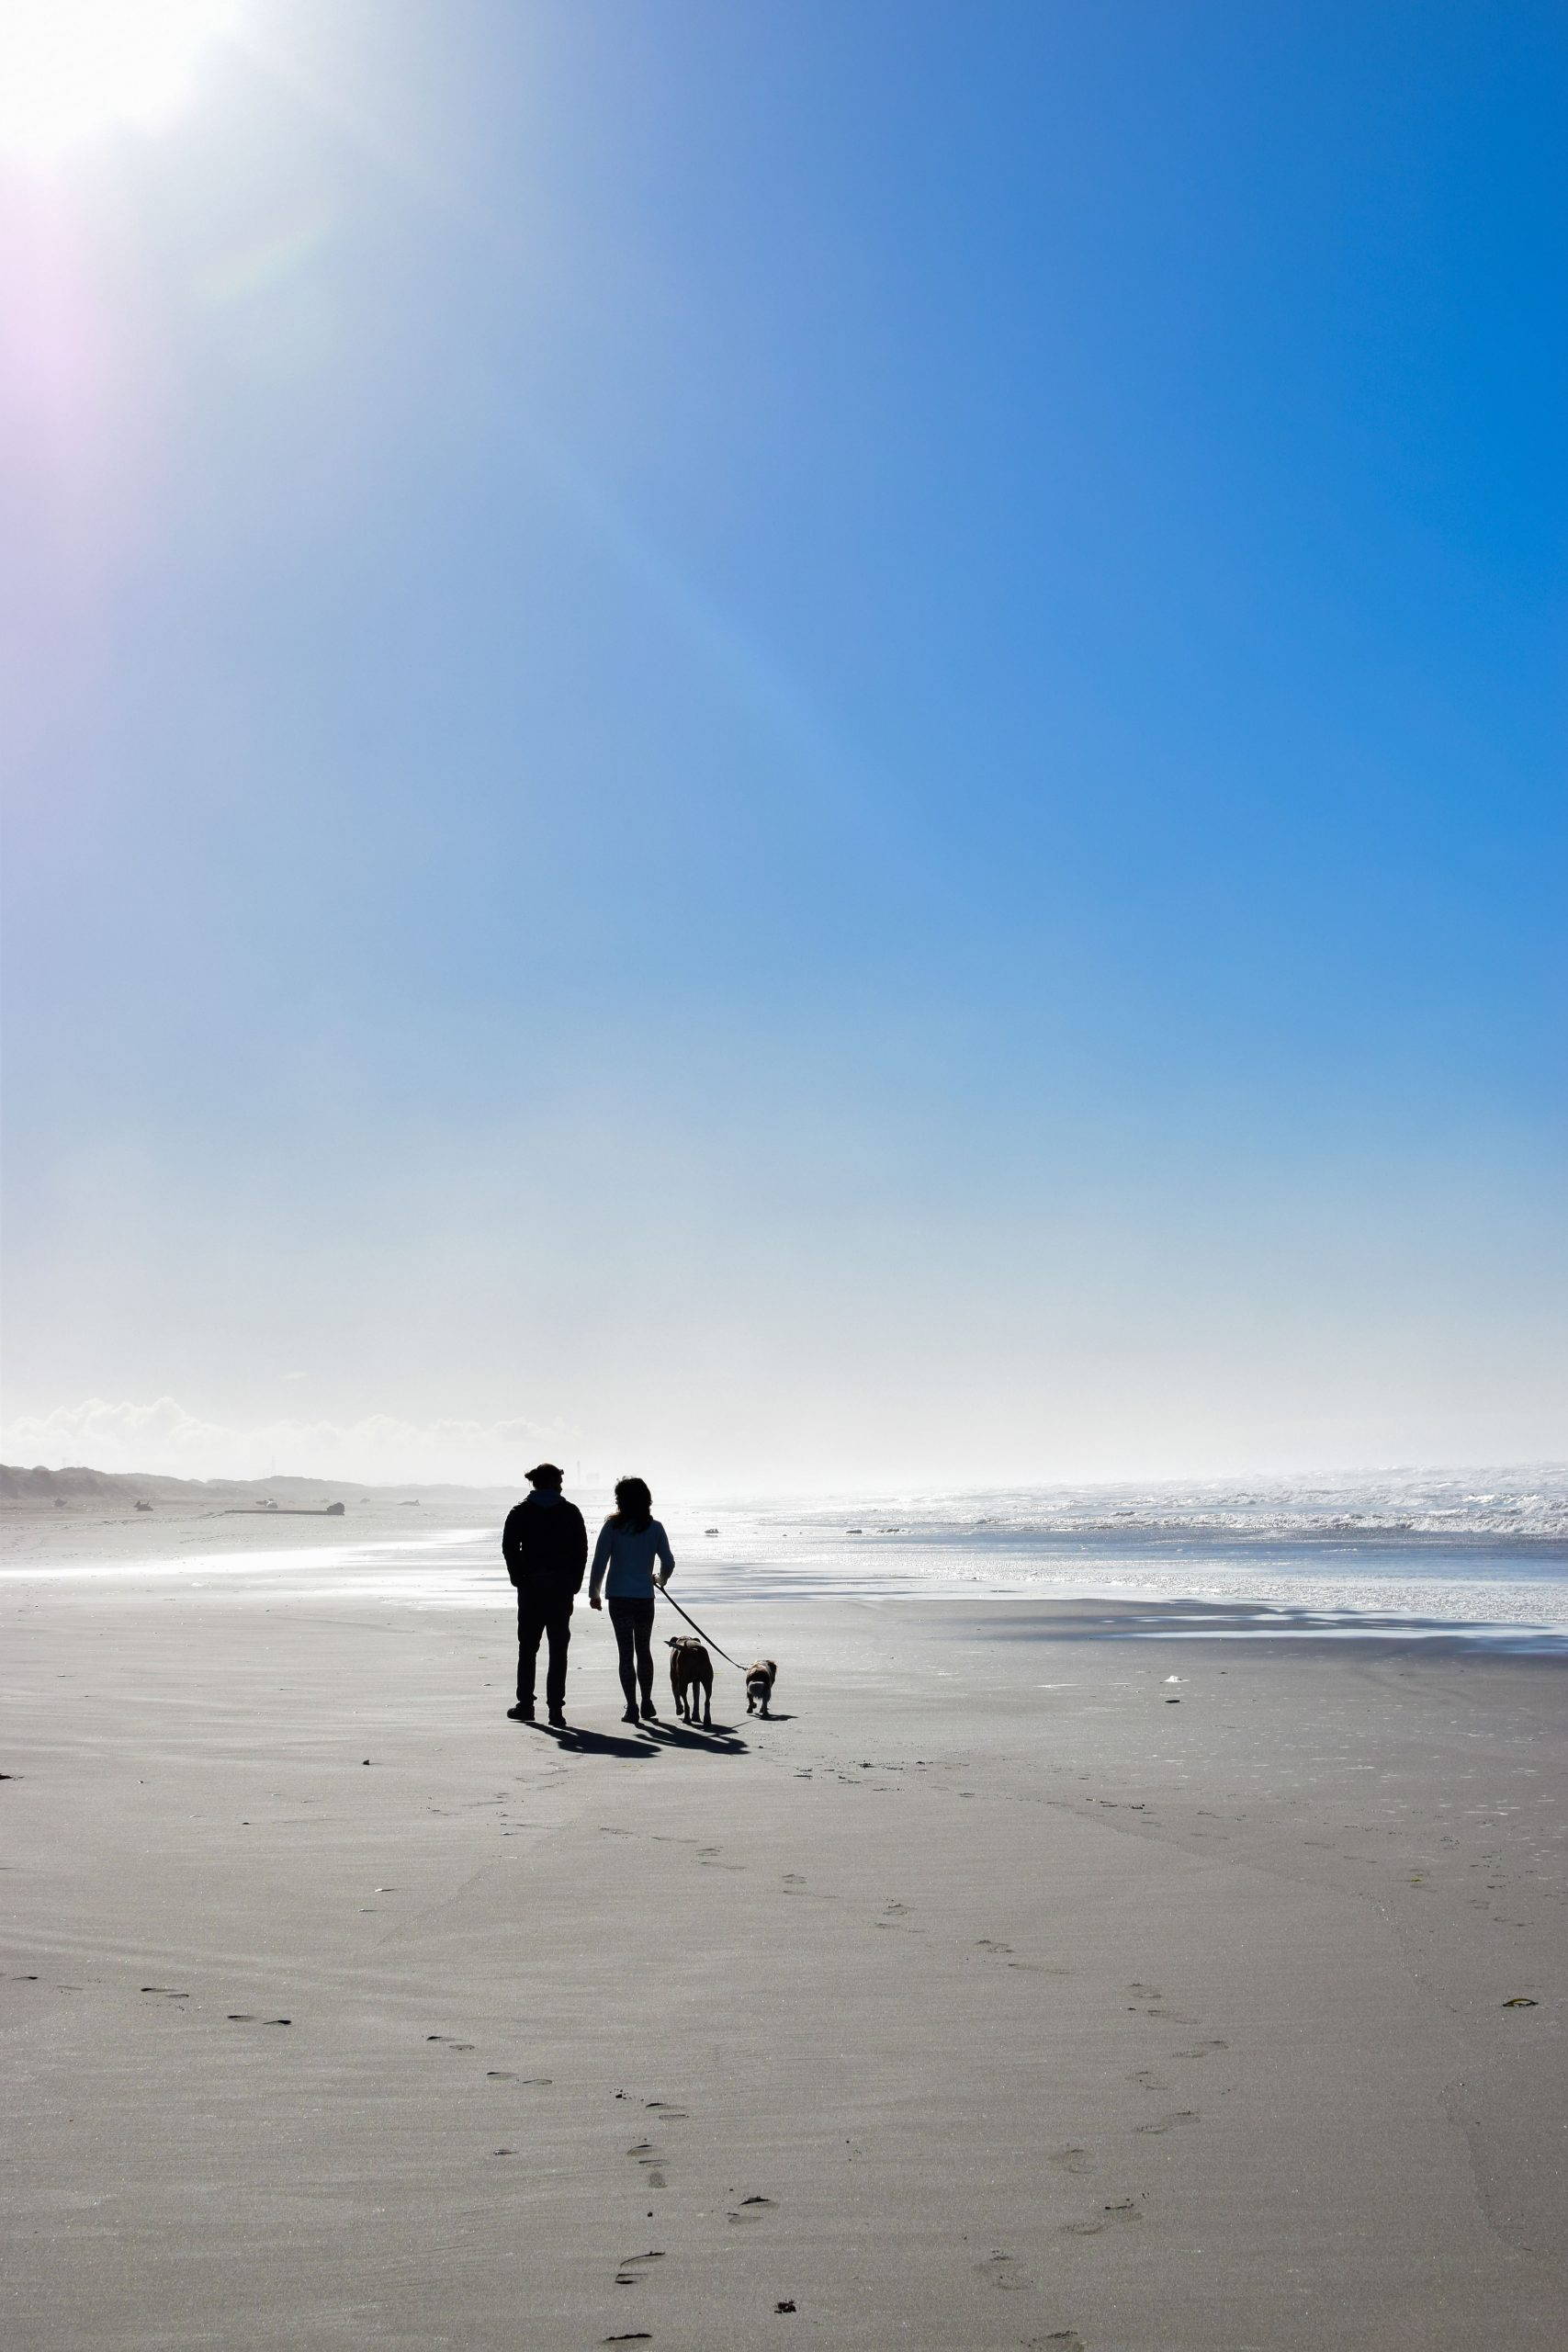 12 Wonderful Local Walks During This Time of Social Distancing